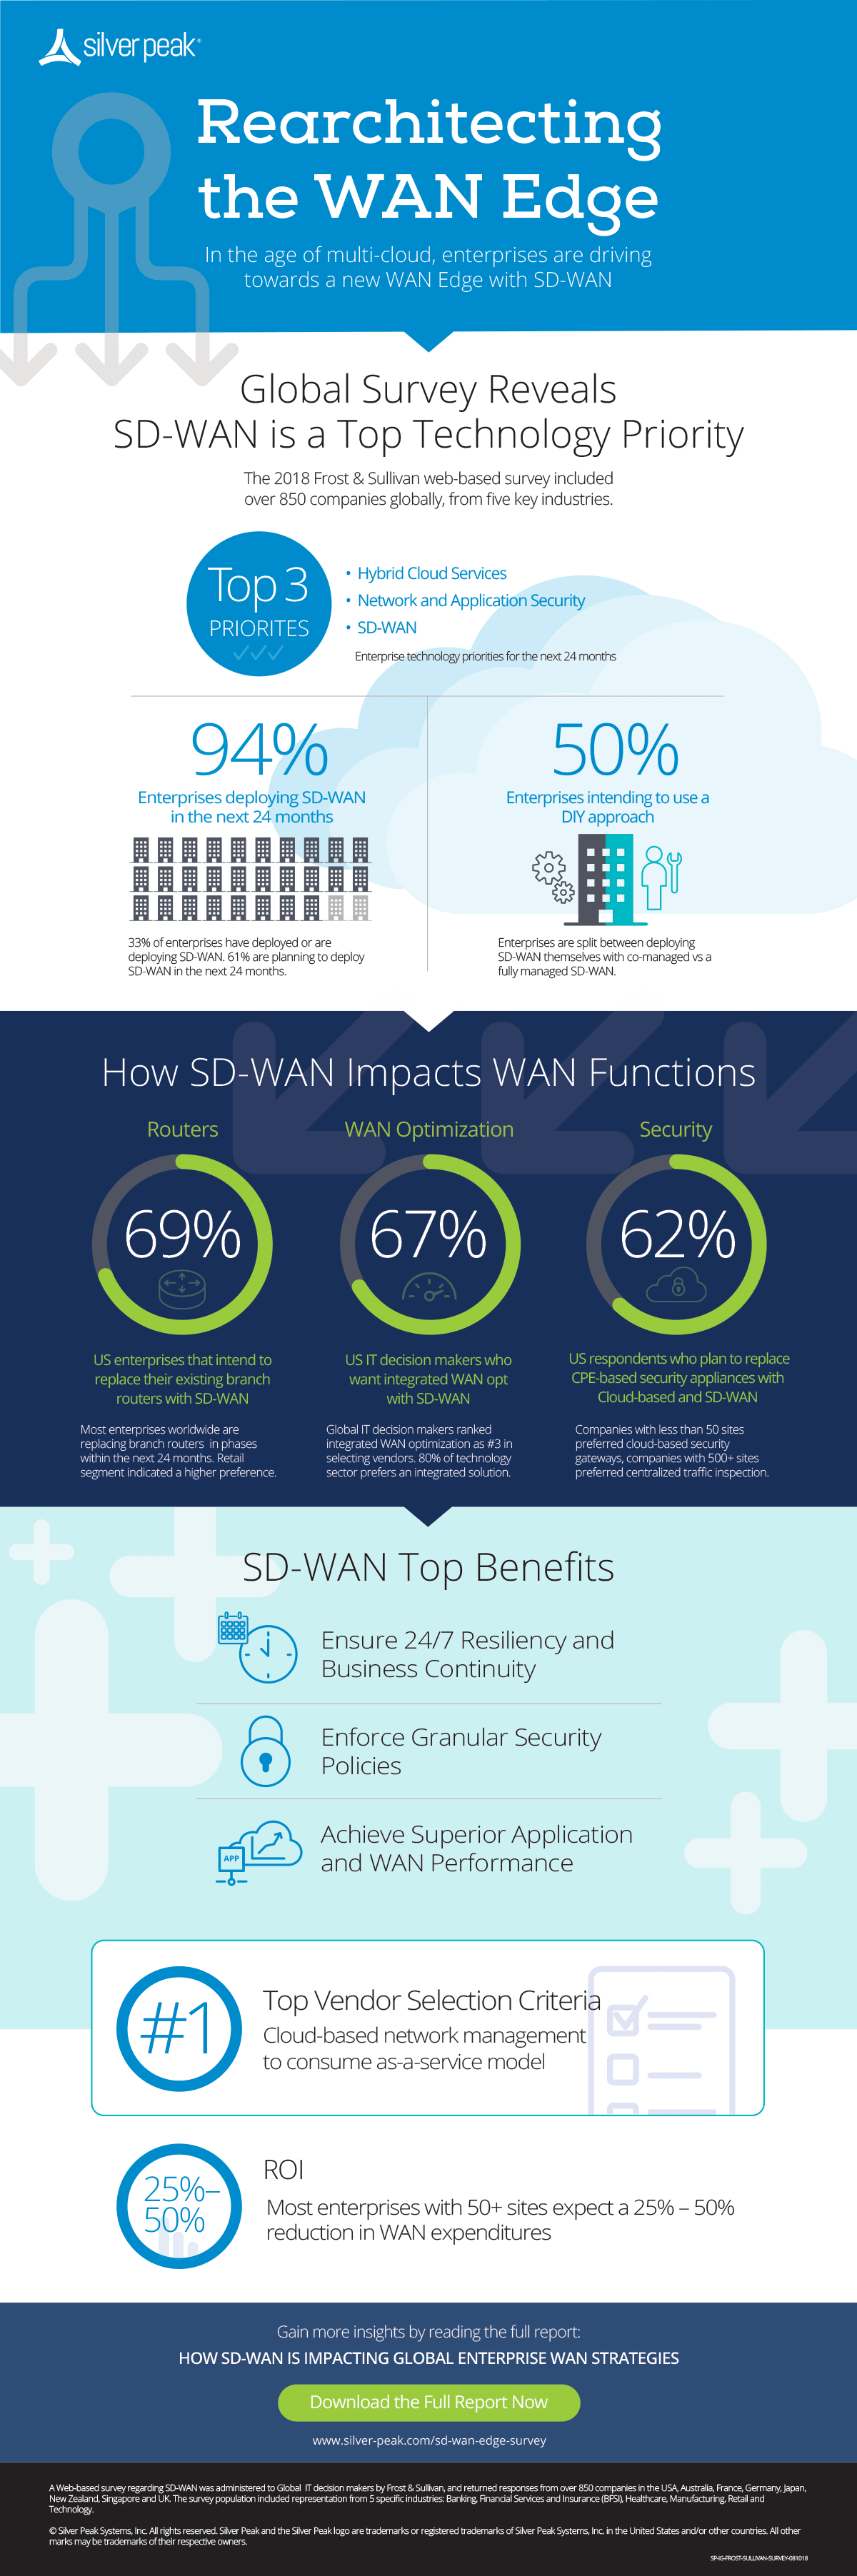 Global Survey Reveals SD-WAN is a Top Technology Priority